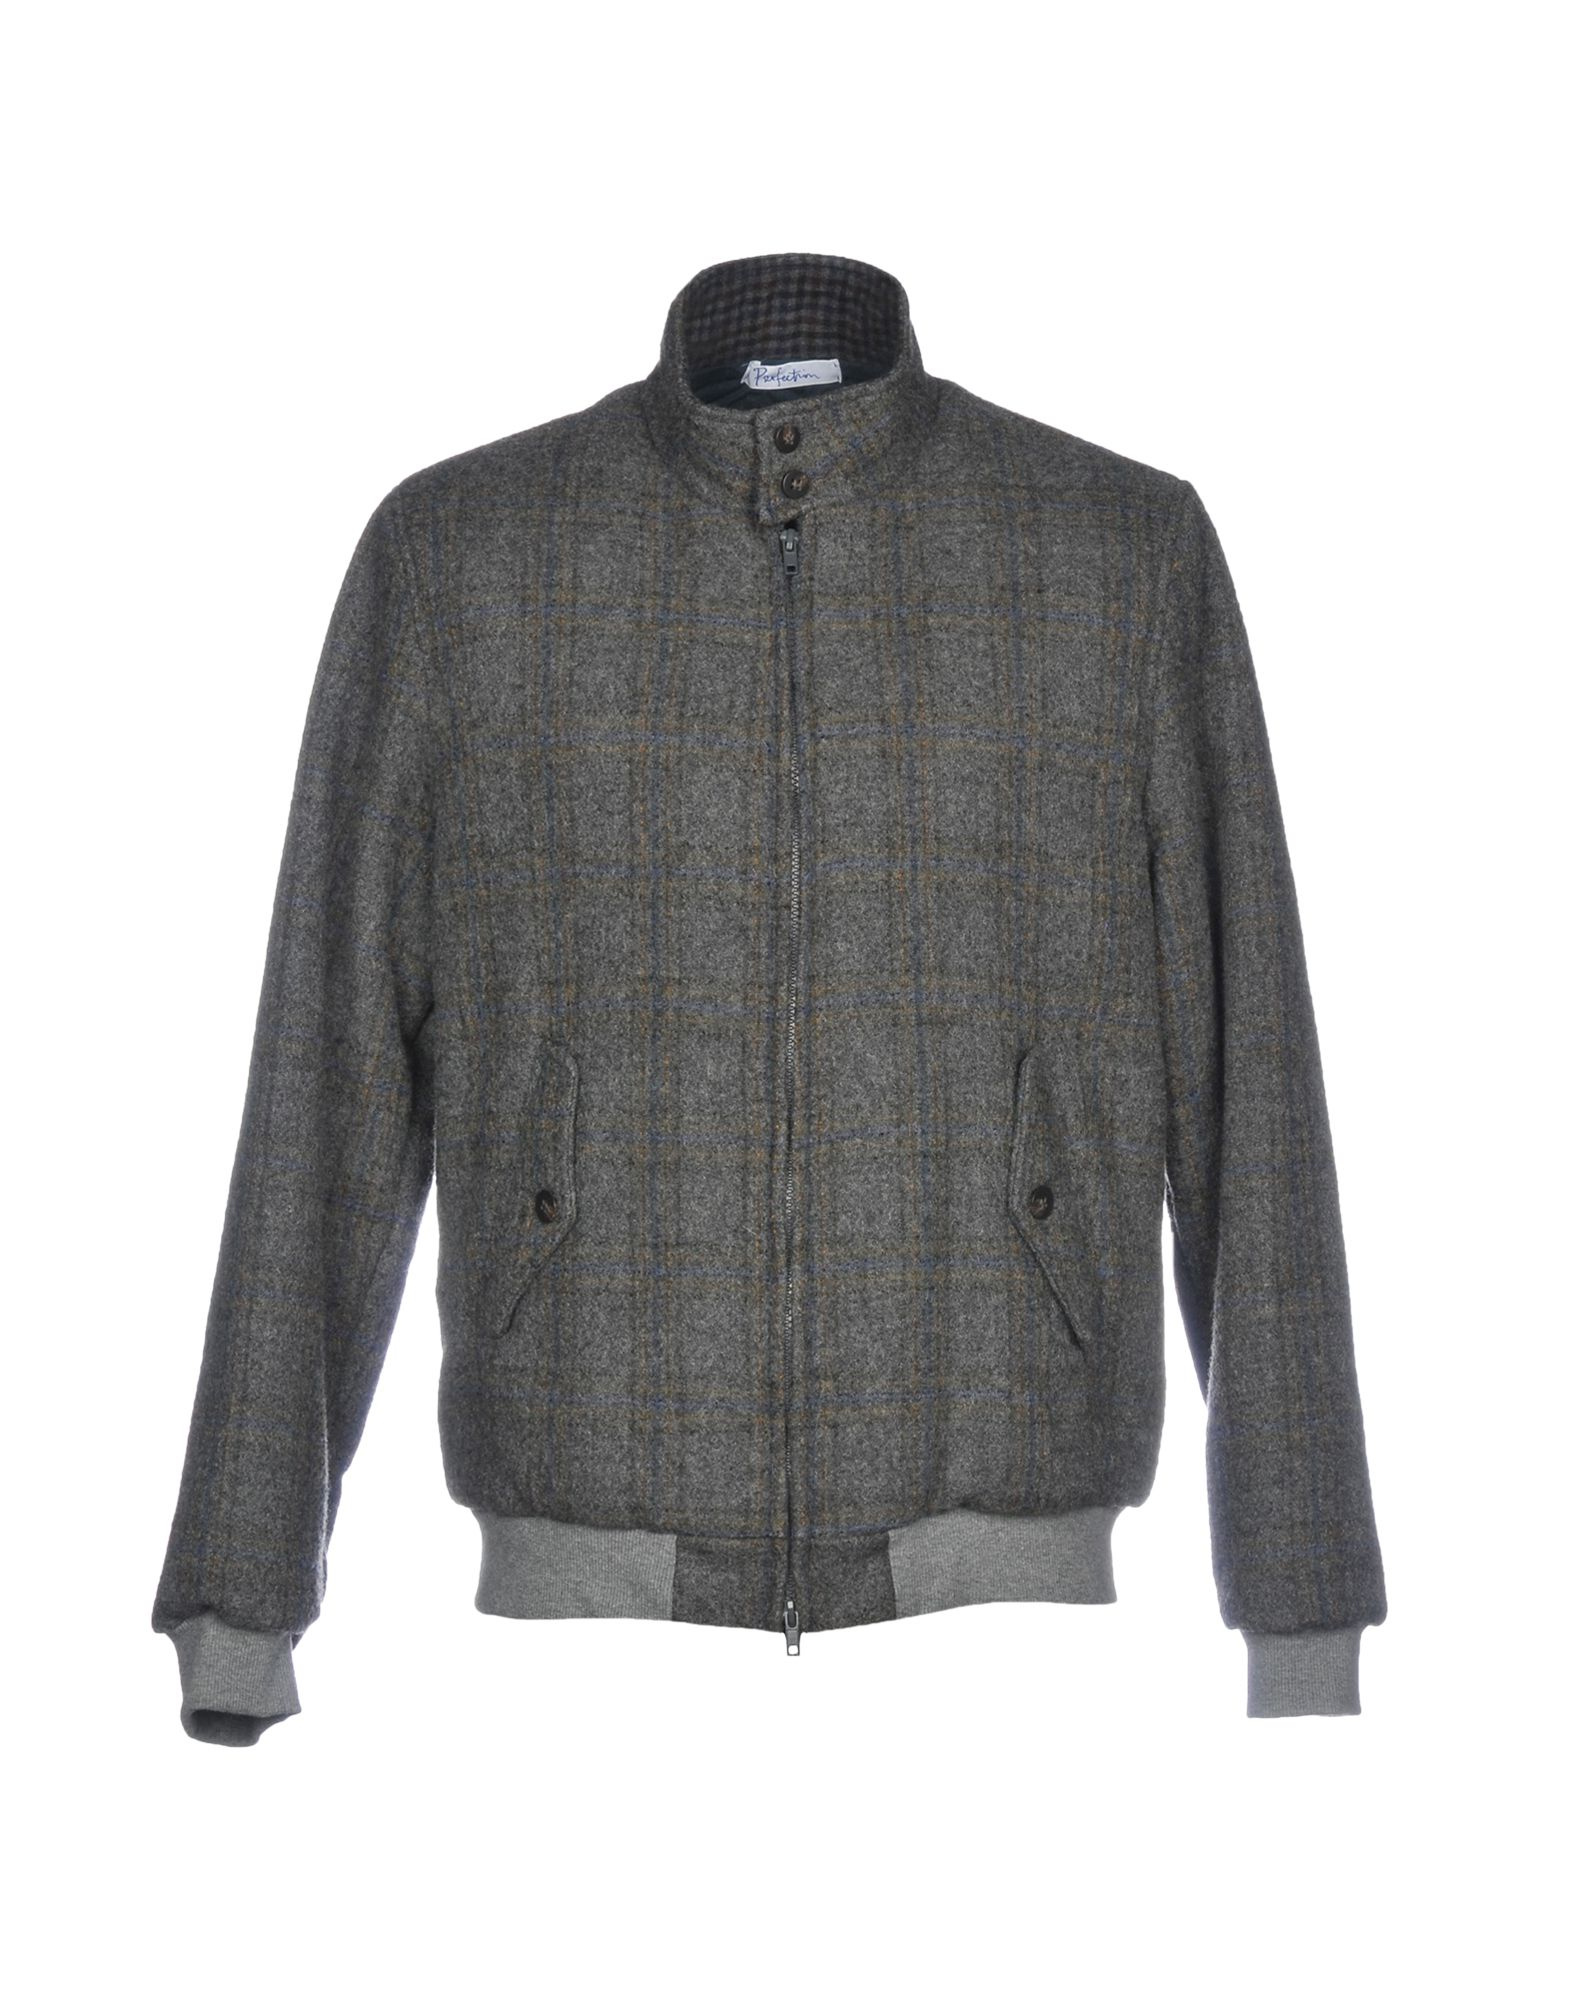 PERFECTION Bomber in Grey